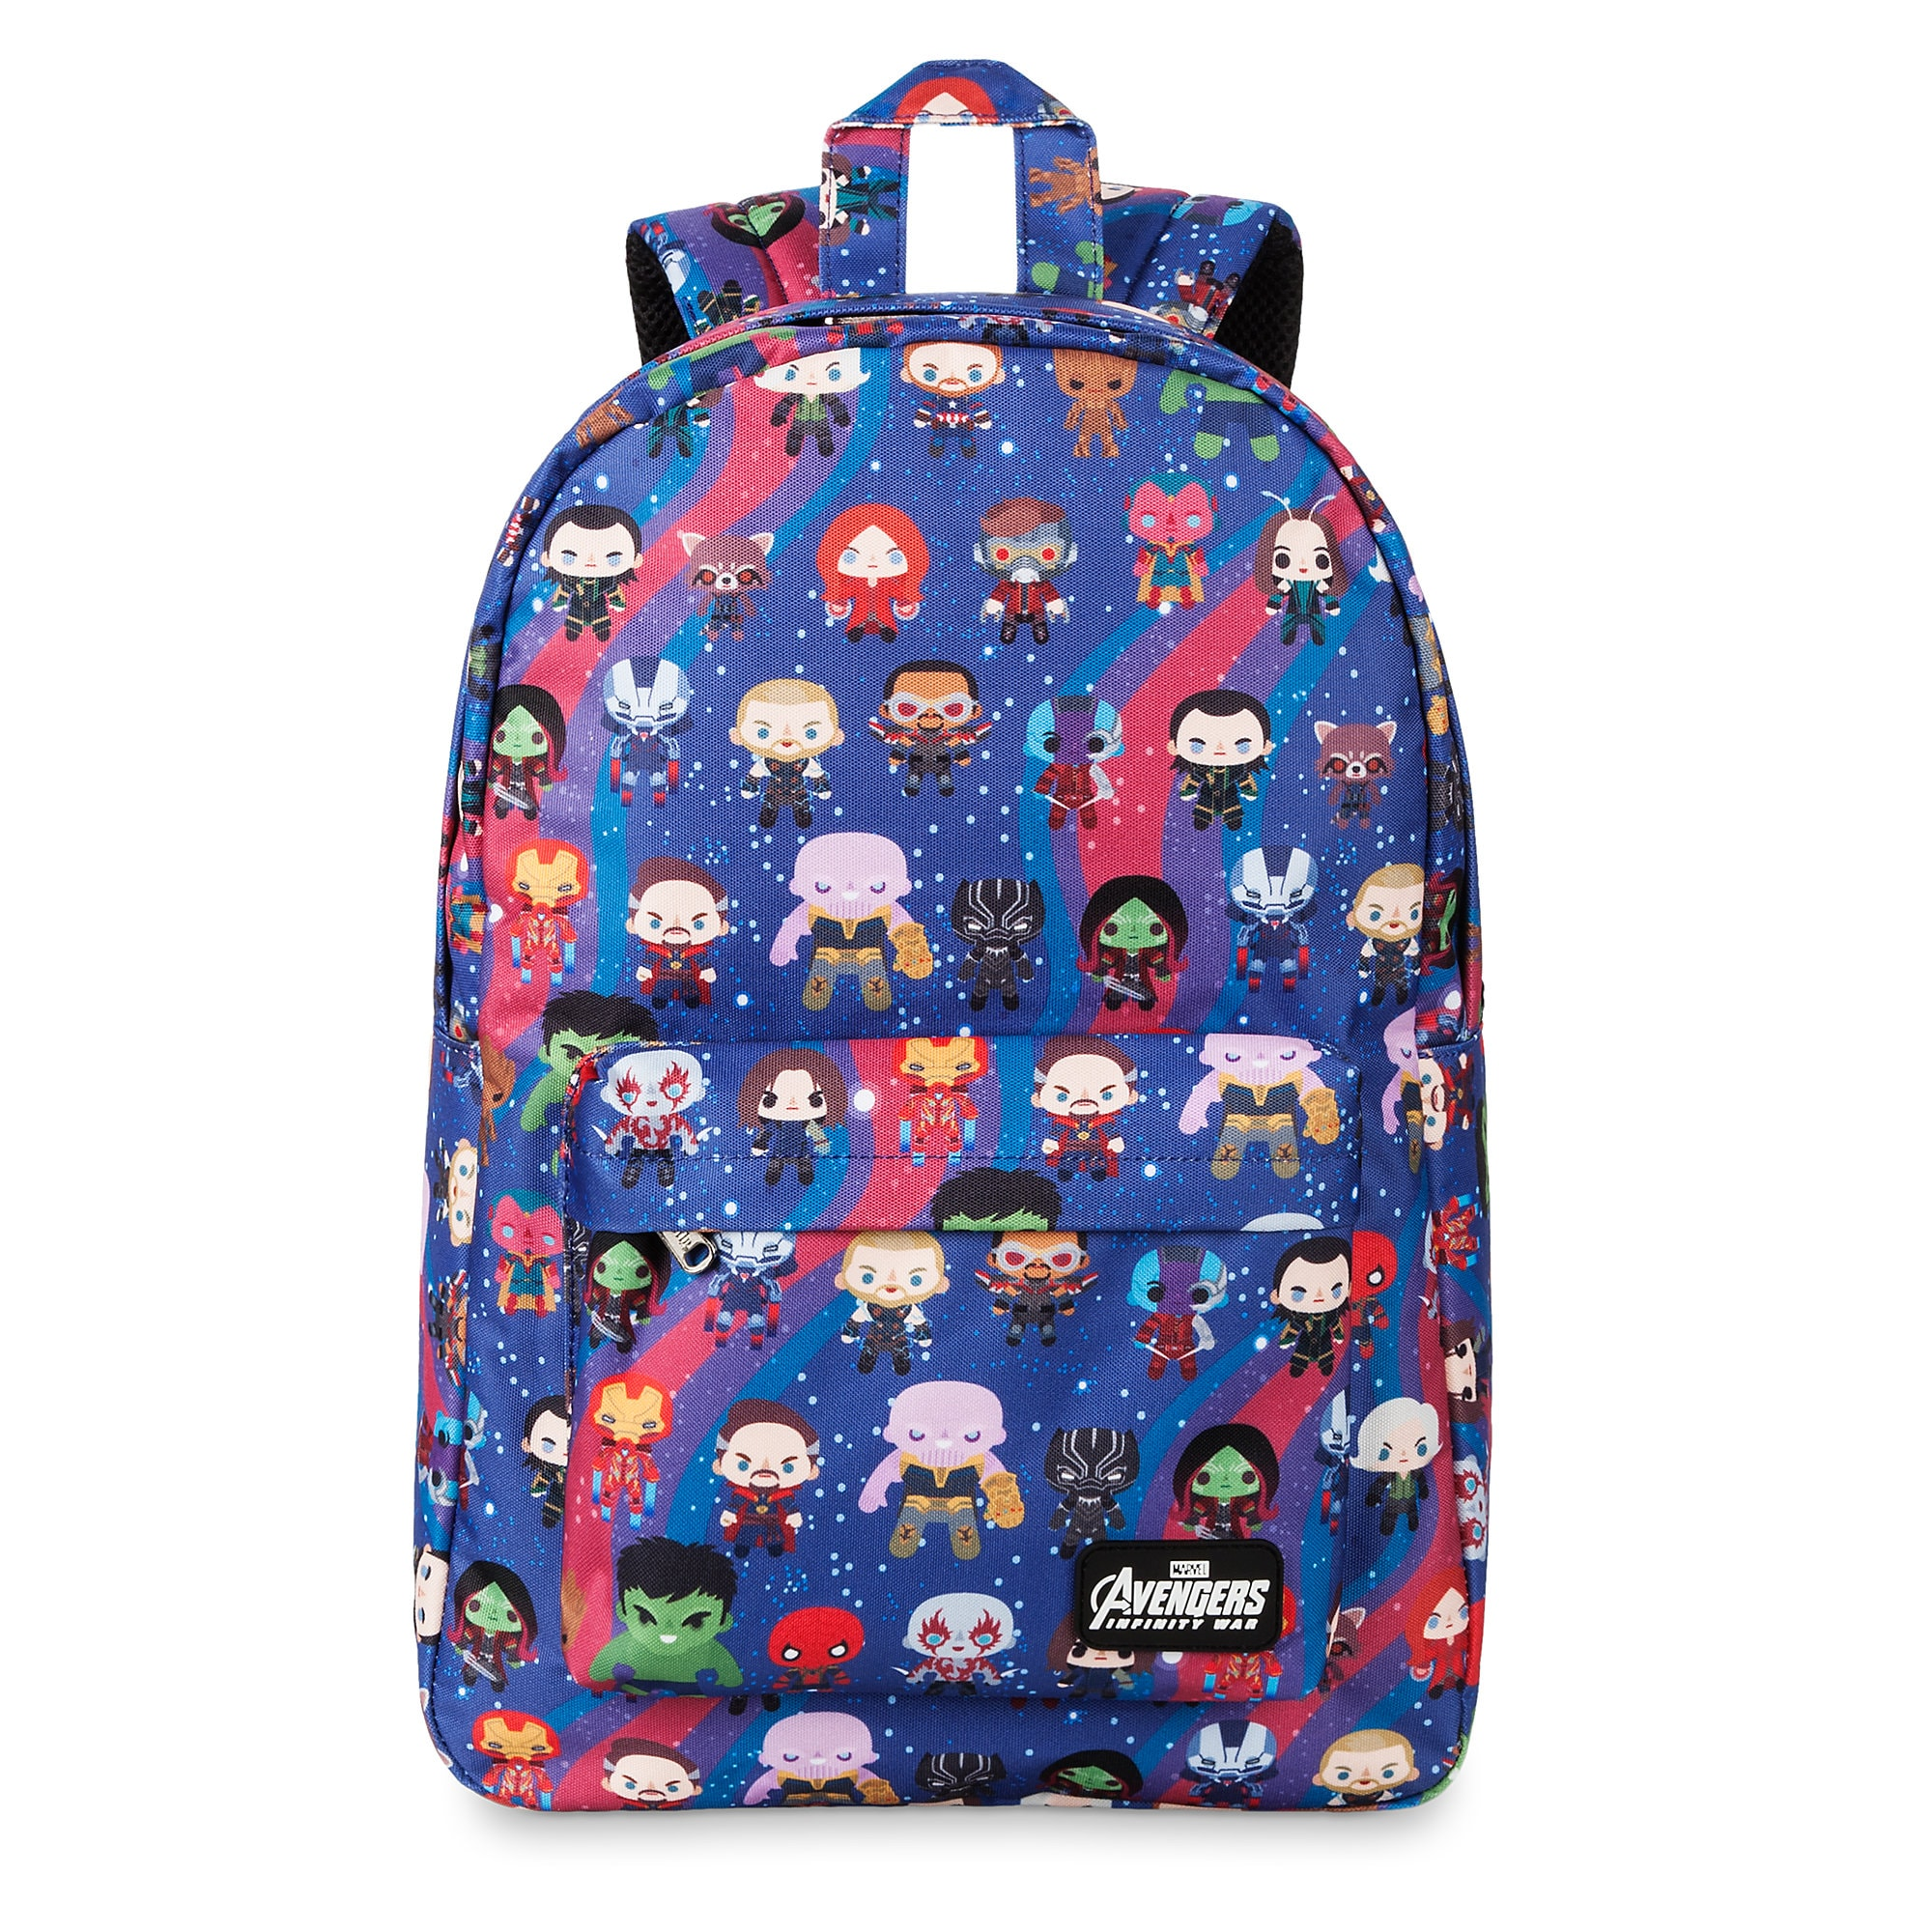 c643adf59d Marvel s Avengers  Infinity War Backpack by Loungefly